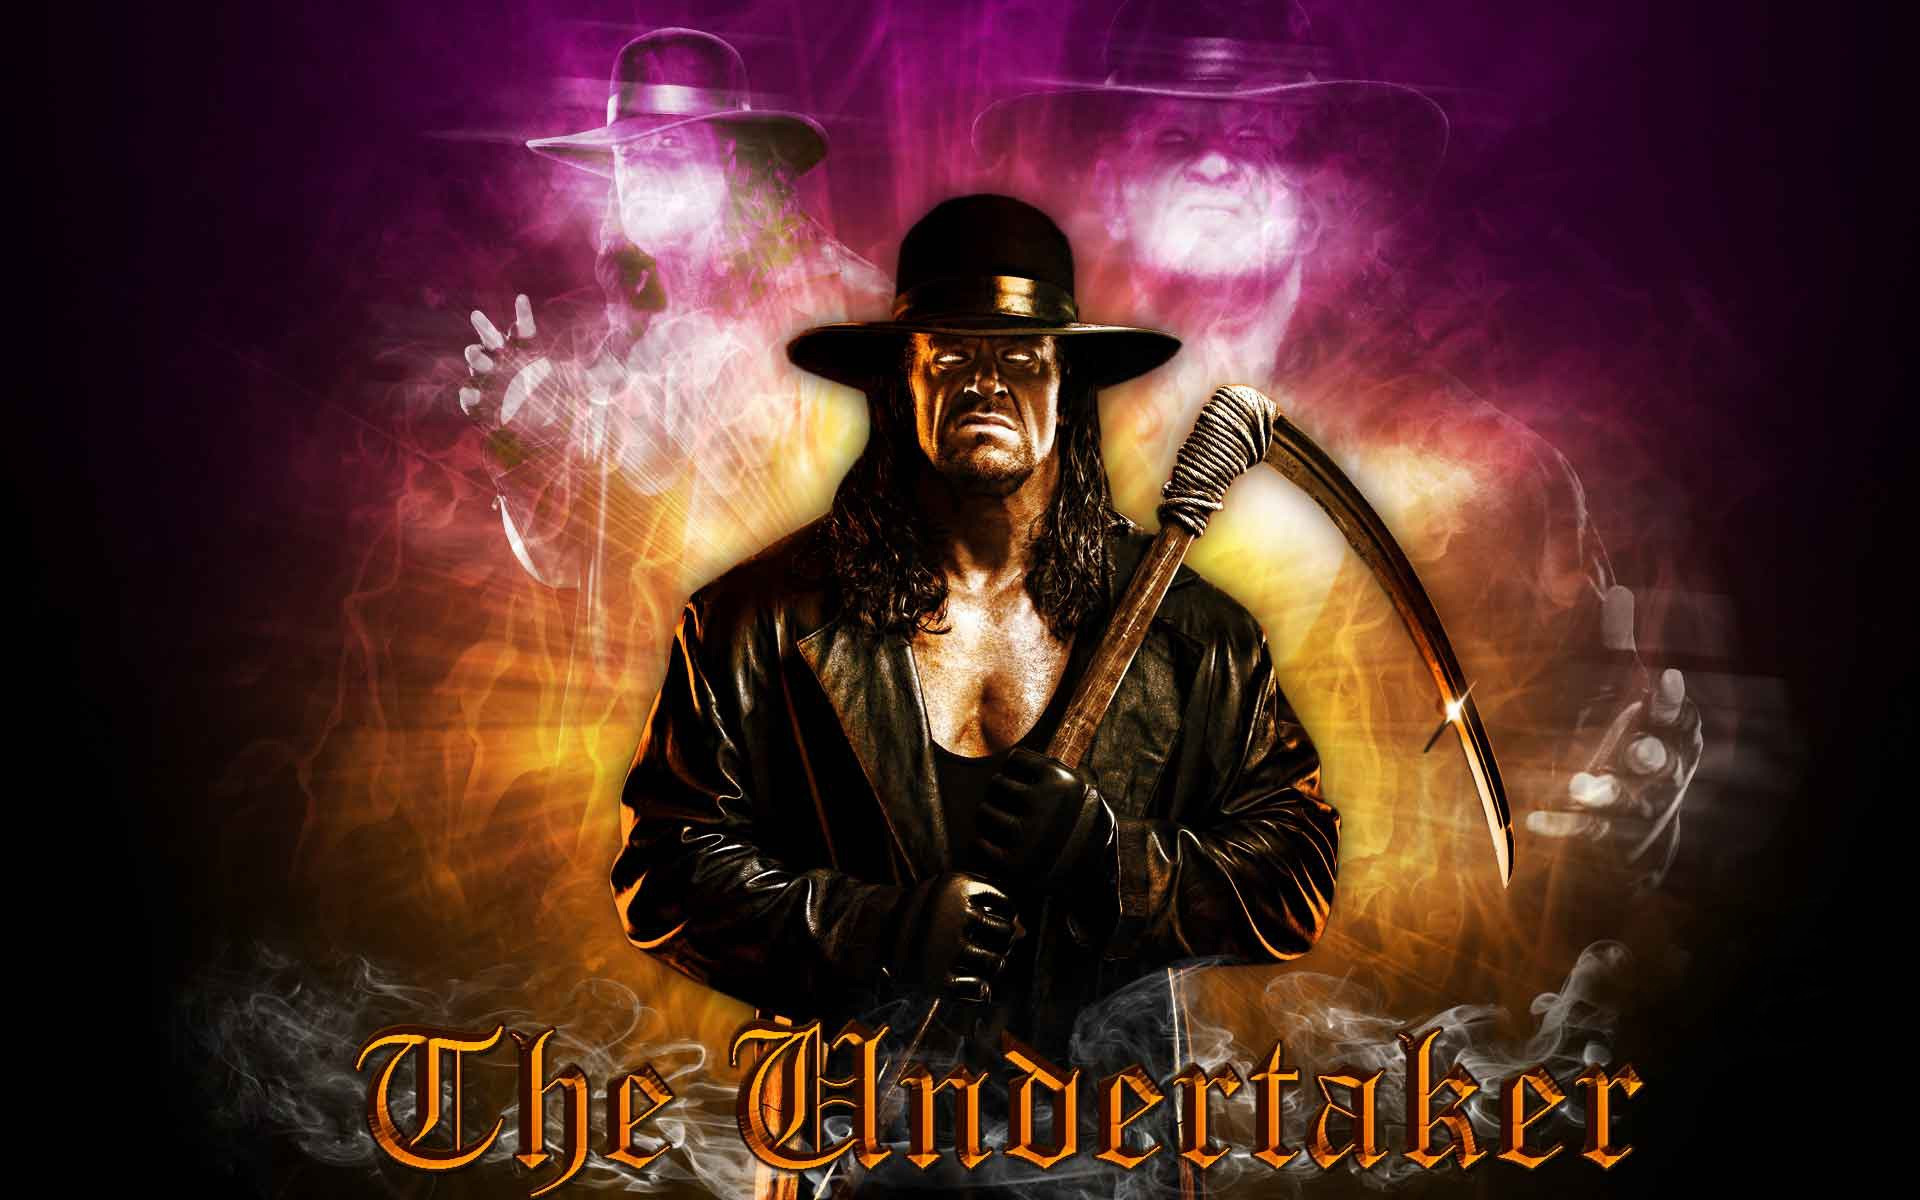 1920x1200 The Man from the Darkside, The Dead Man, The Phenom, The Undertaker!